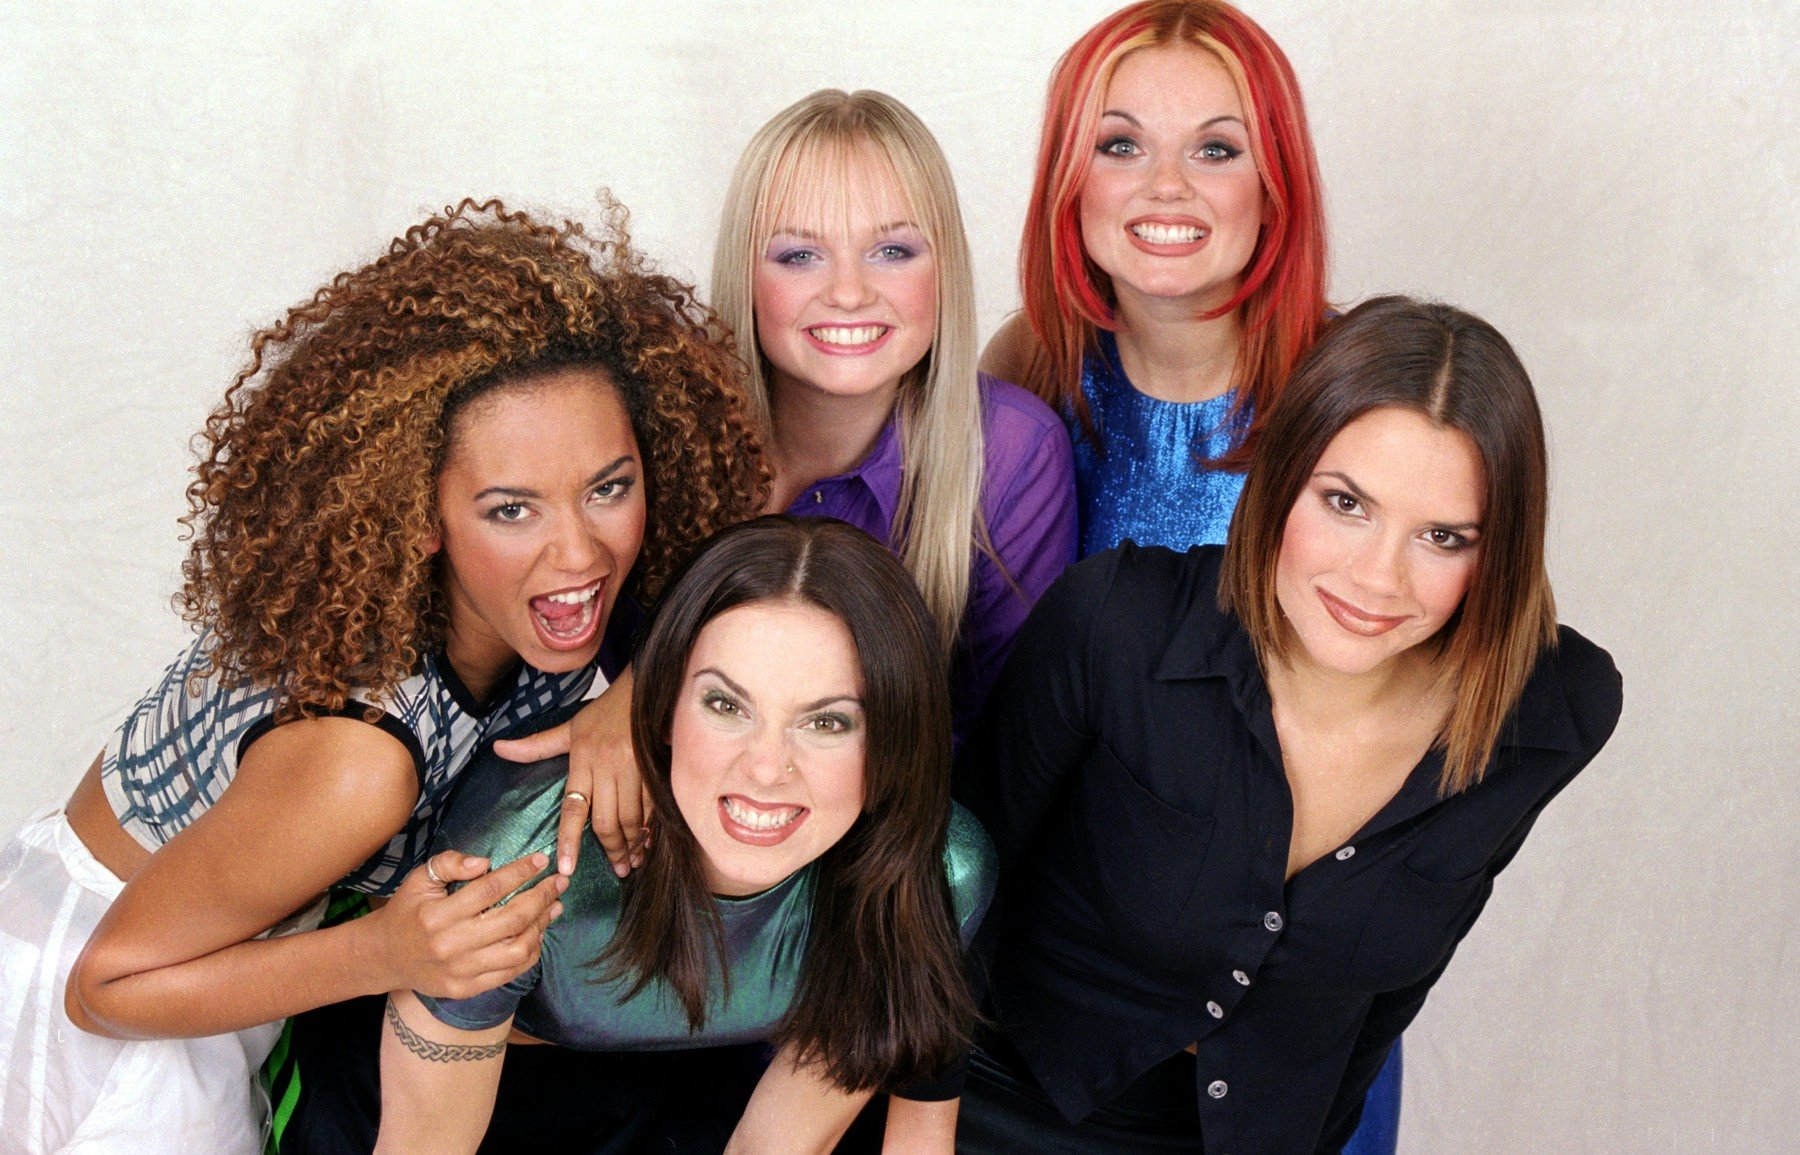 British all girl pop group The Spice Girls pose for a group photograph in the Daily Mirror Studios. They are back ro left to right: Mel B (Scary Spice), Emma Bunton (Baby Spice), Geri Halliwell (Ginger Spice) and  Victoria Adams (Posh Spice). Front is Melanie Chisholm (Sporty Spice). 23rd October 1996., Image: 175232832, License: Rights-managed, Restrictions: , Model Release: no, Credit line: Profimedia, MirrorPix